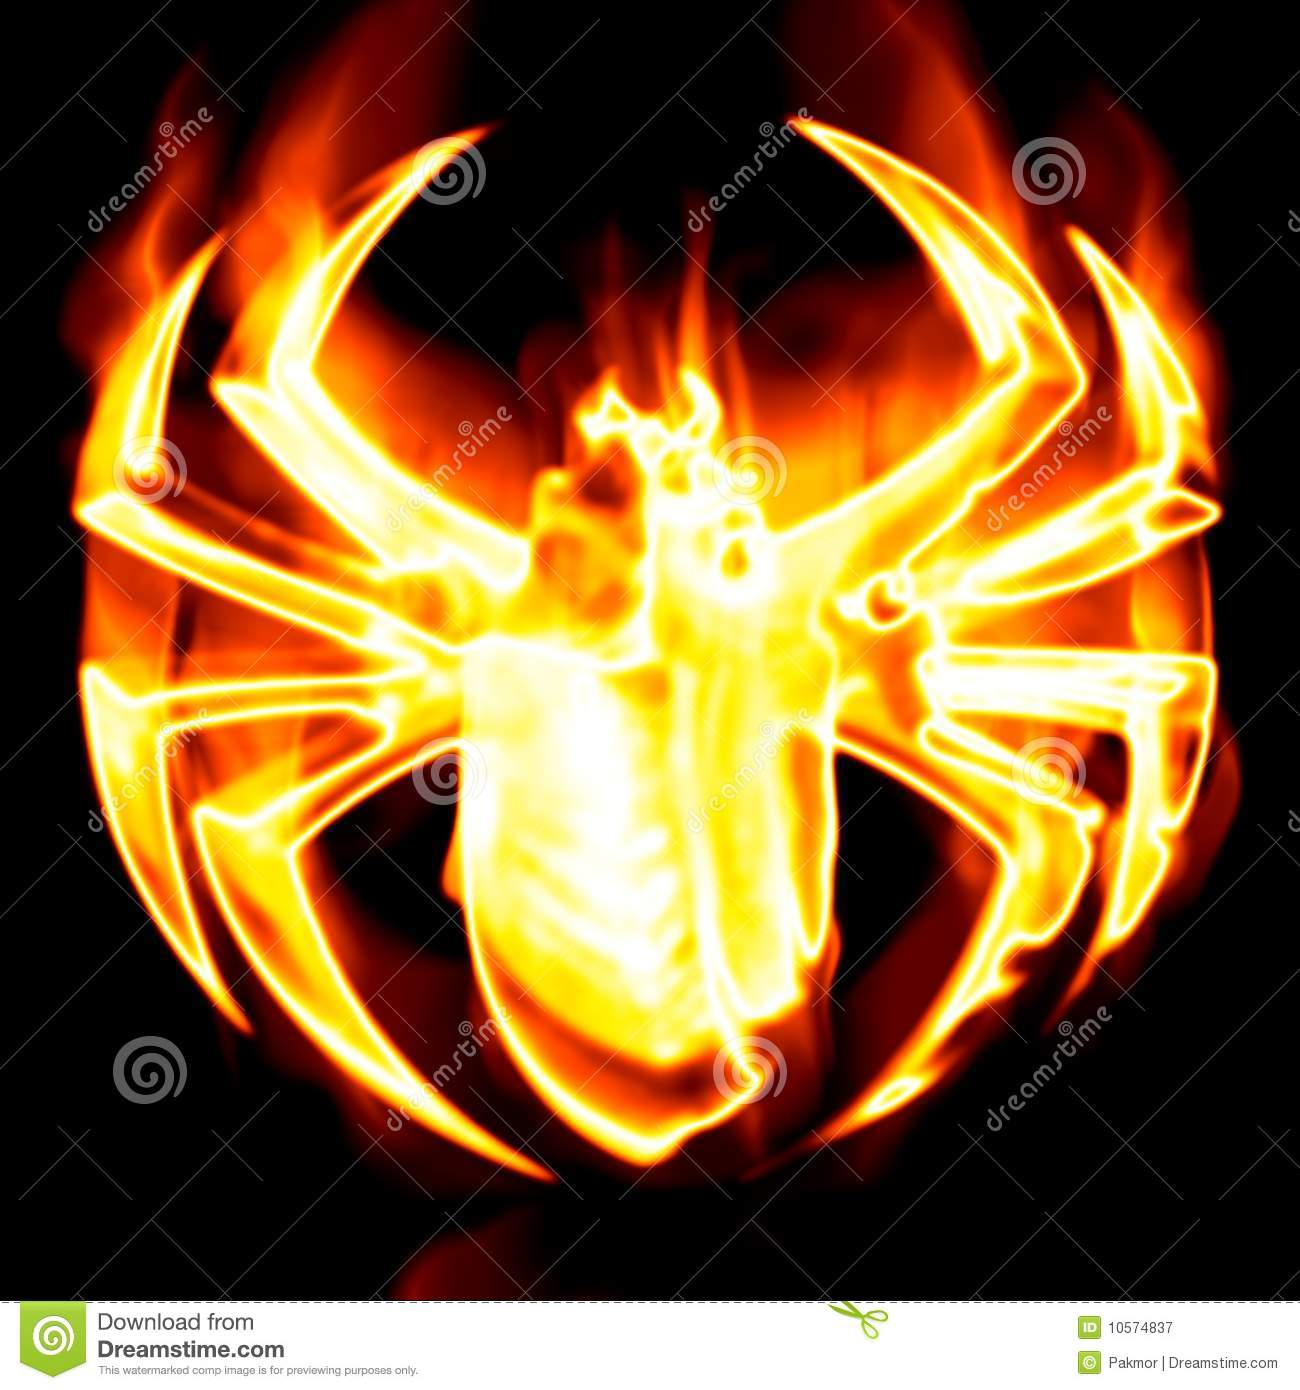 Toriko Surrounded By Bugs Jpg: Spider Surrounded By Fire Royalty Free Stock Photography